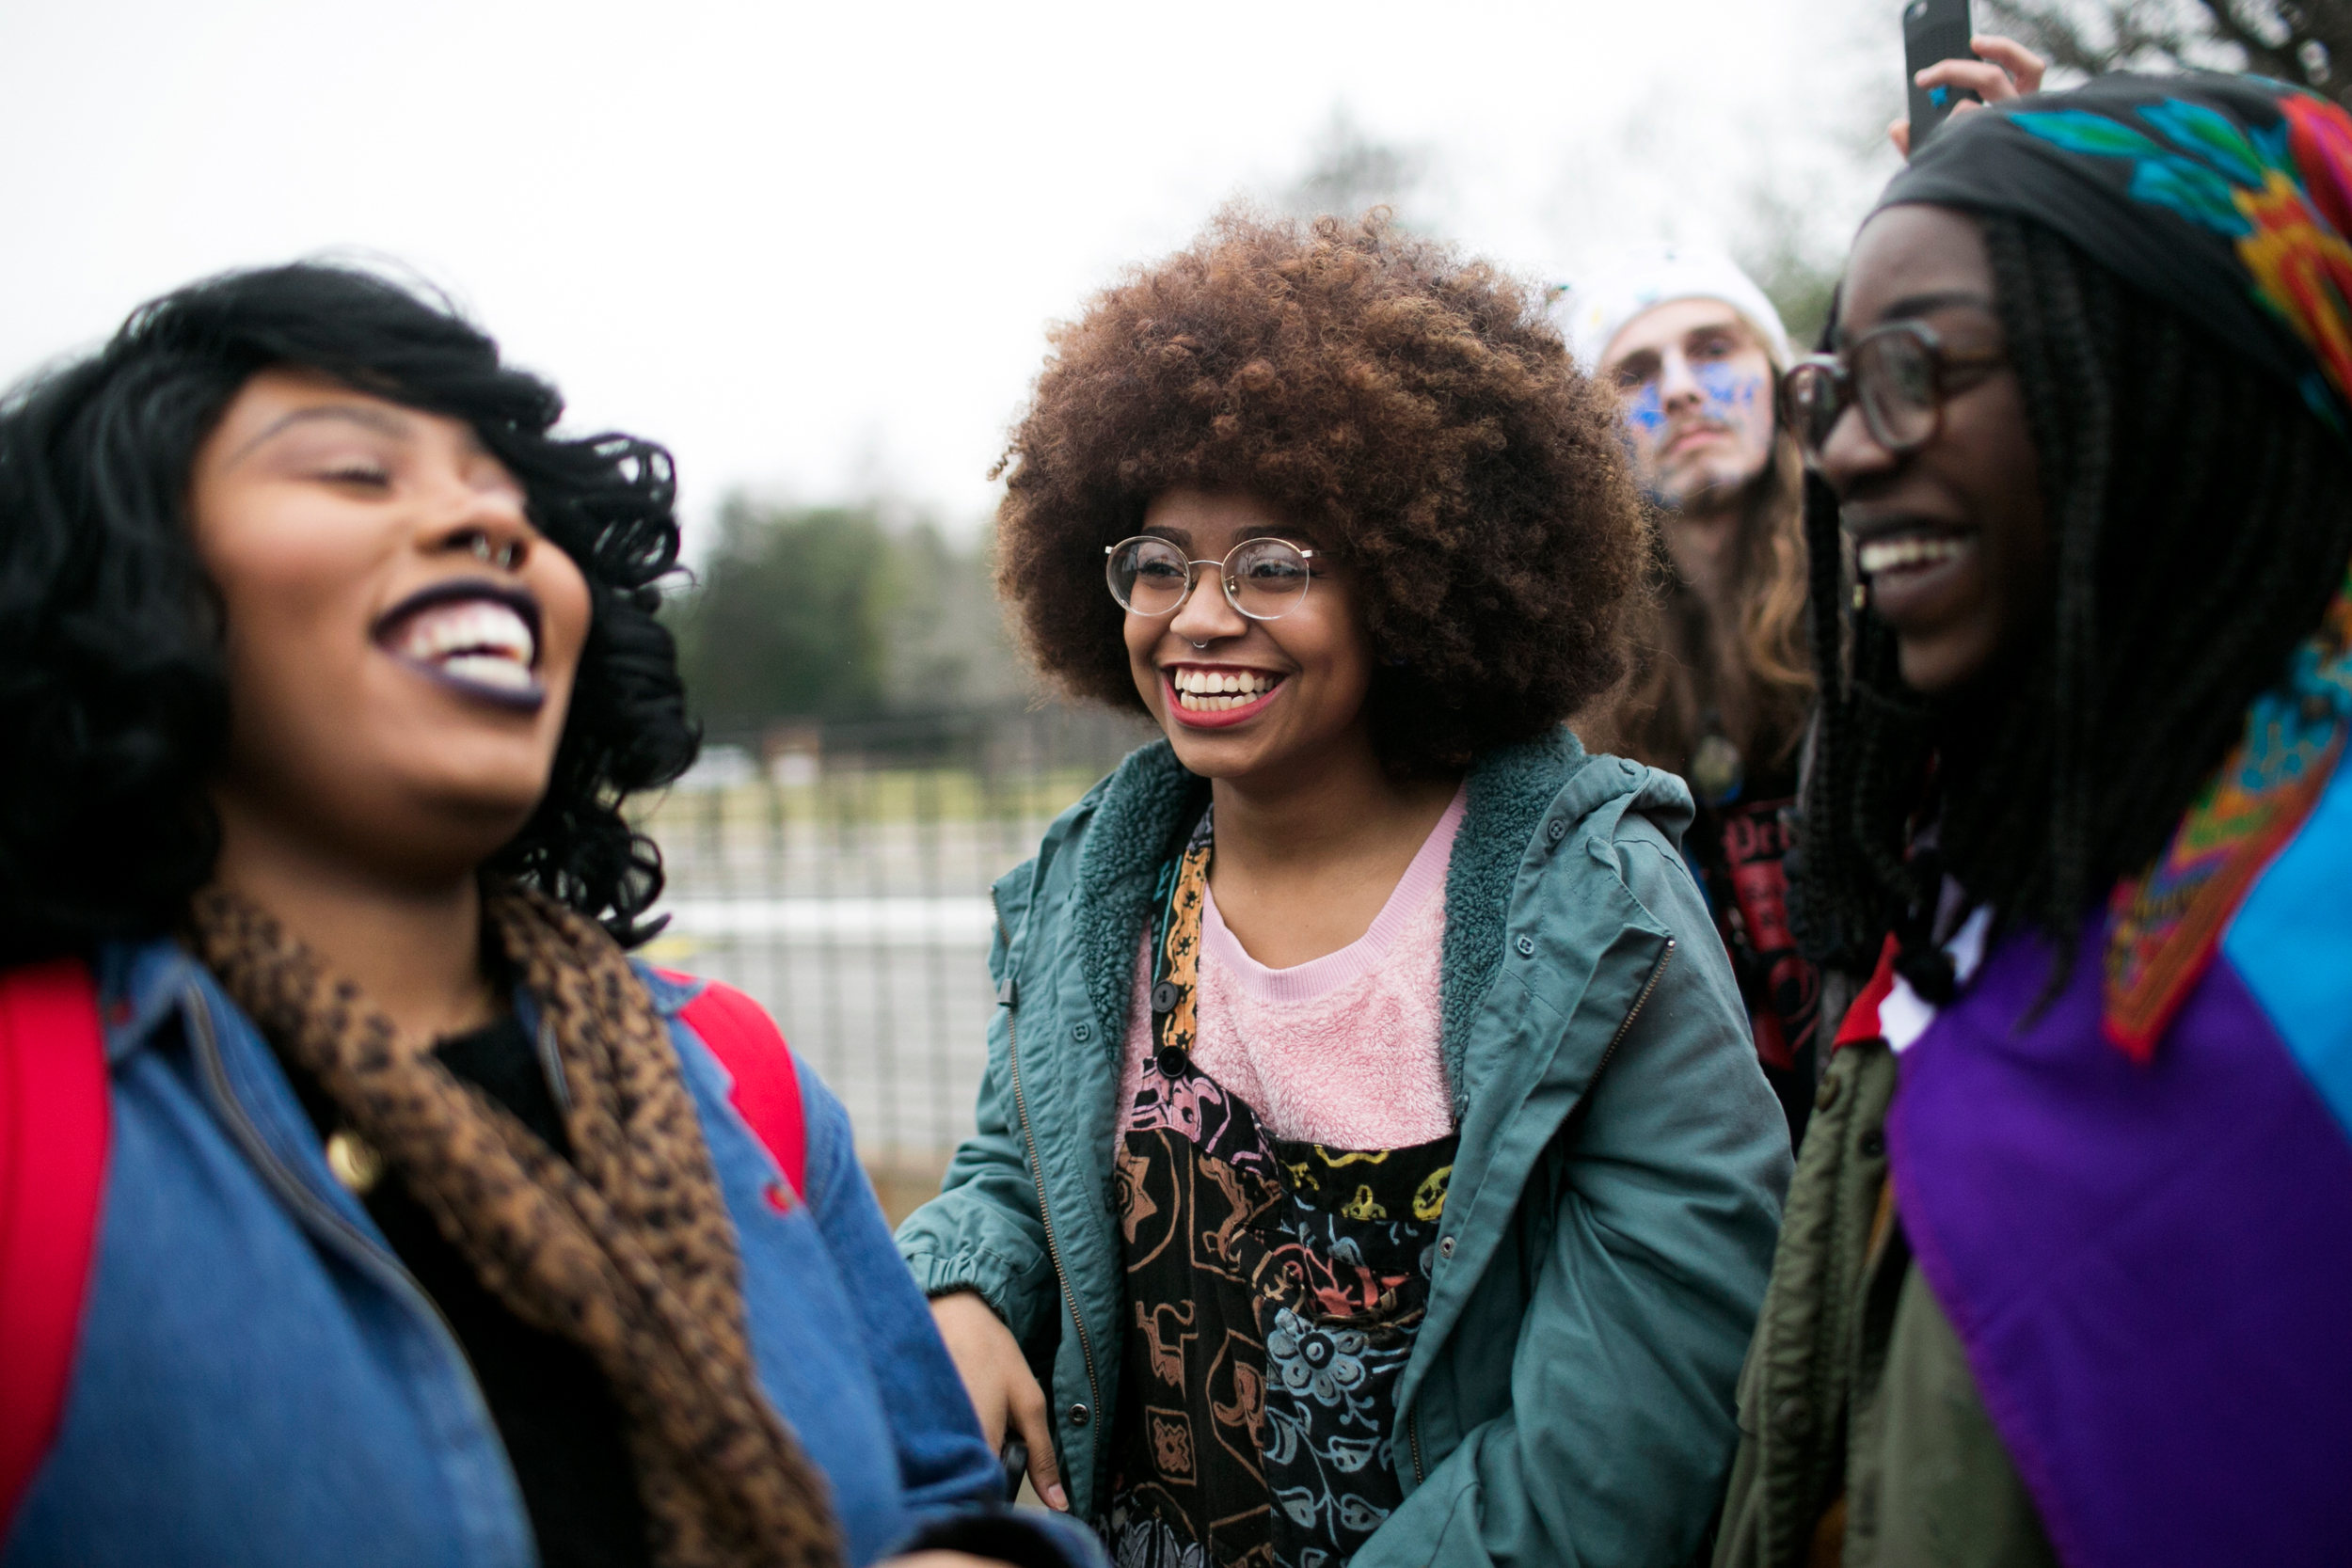 Quahmayla Brooks, Giovanna Dorvelus, and Beryl Kesslo participate in the Women's March in Washington, D.C. the day after Donald Trump's Inauguration.